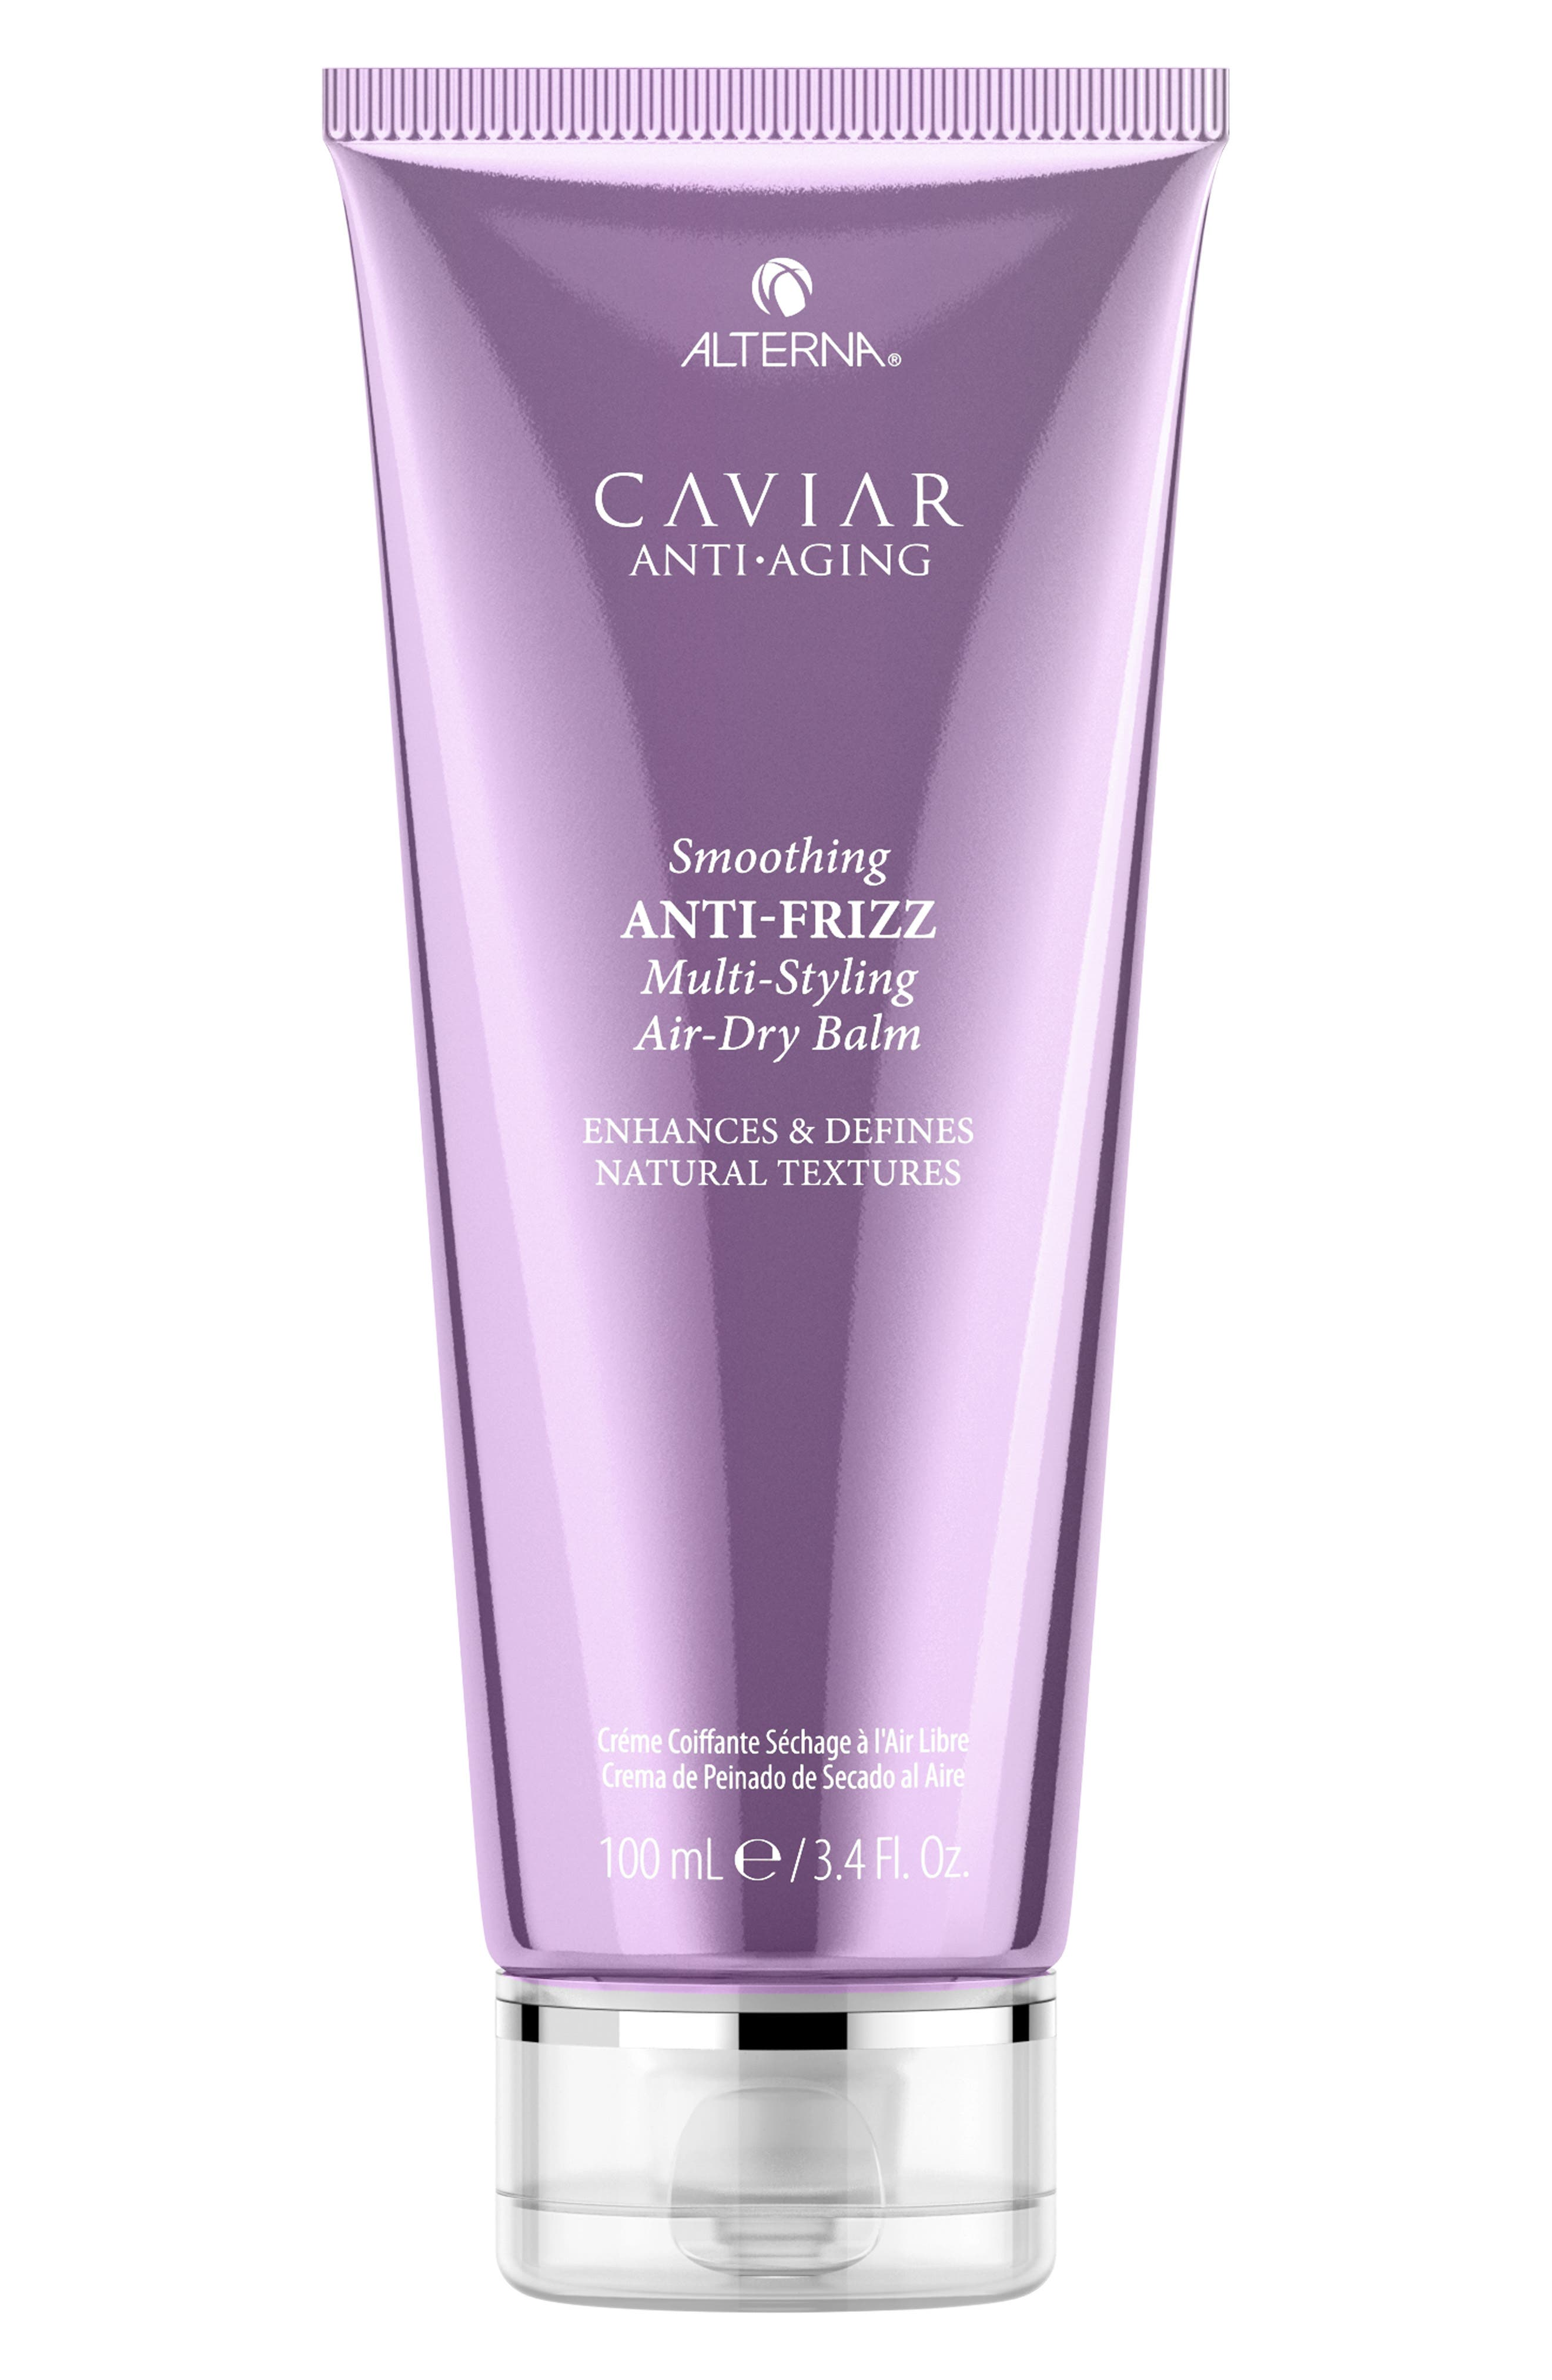 ALTERNA(R) Caviar Anti-Aging Smoothing Anti-Frizz Multi-Styling Air-Dry Balm in No Color at Nordstrom